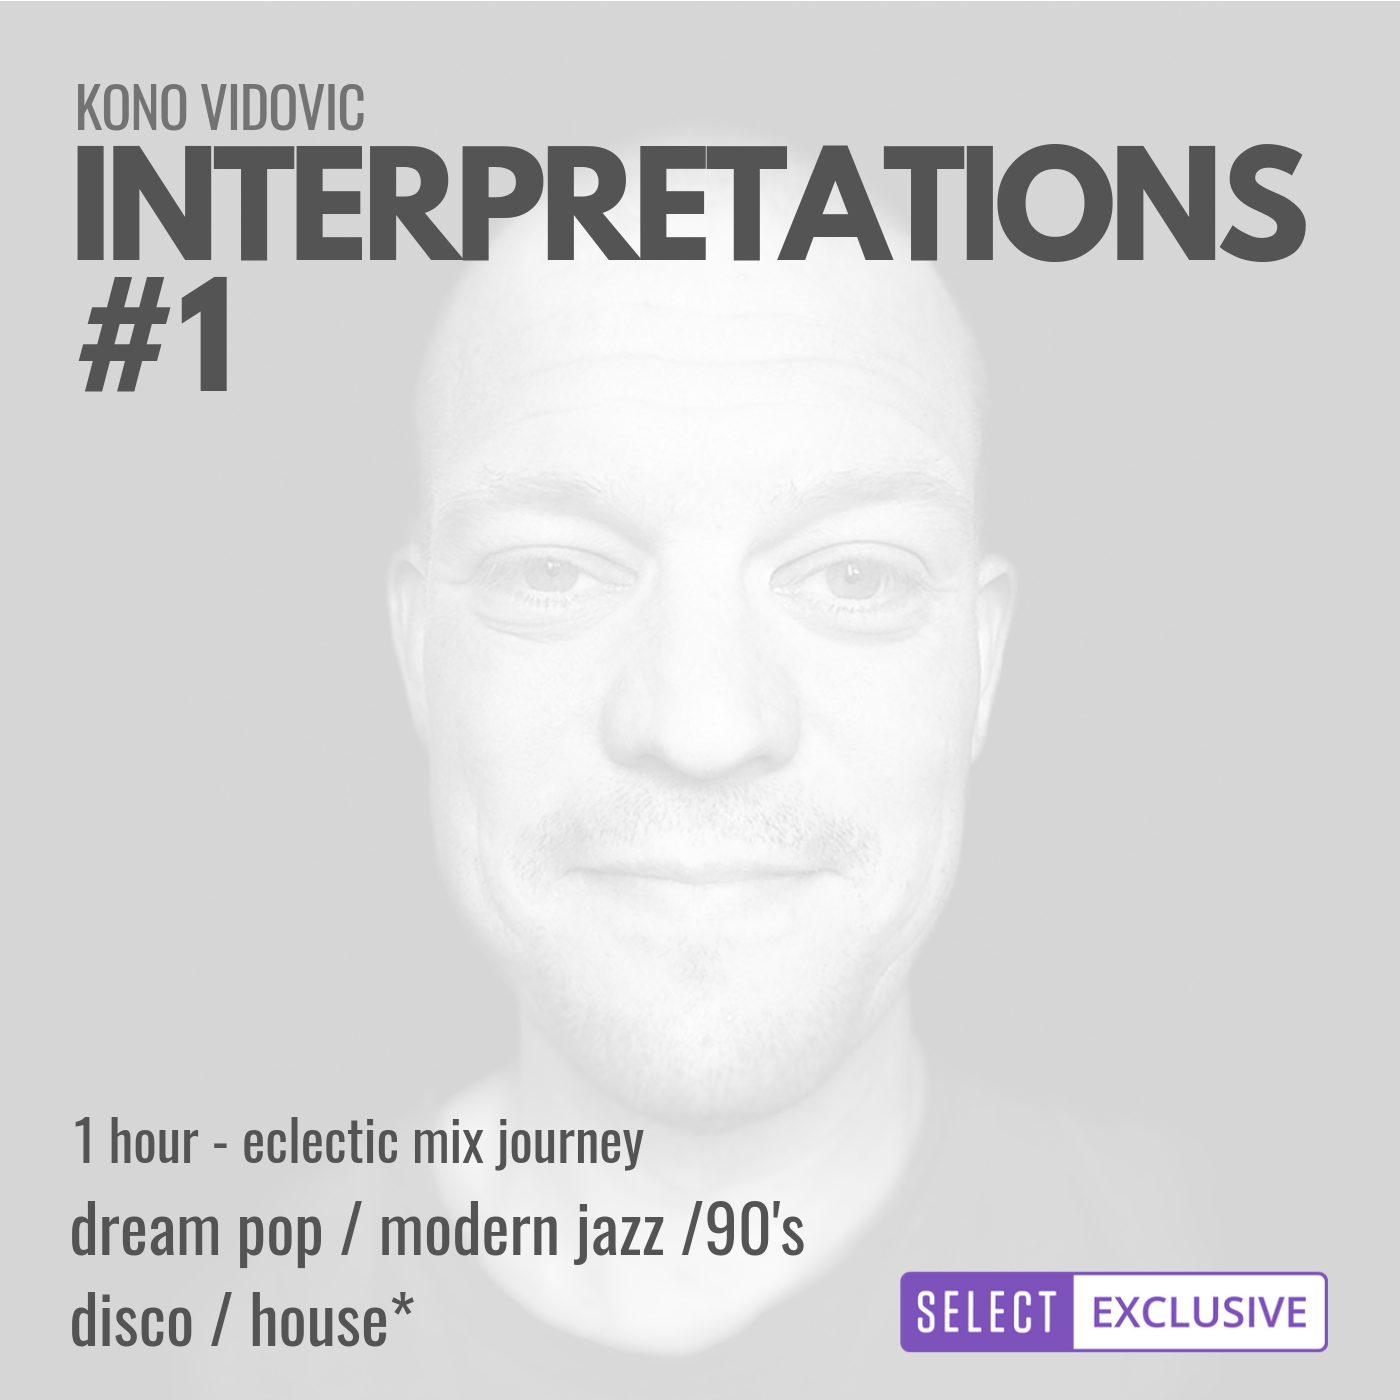 Kono Vidovic - Interpretations artwork #1